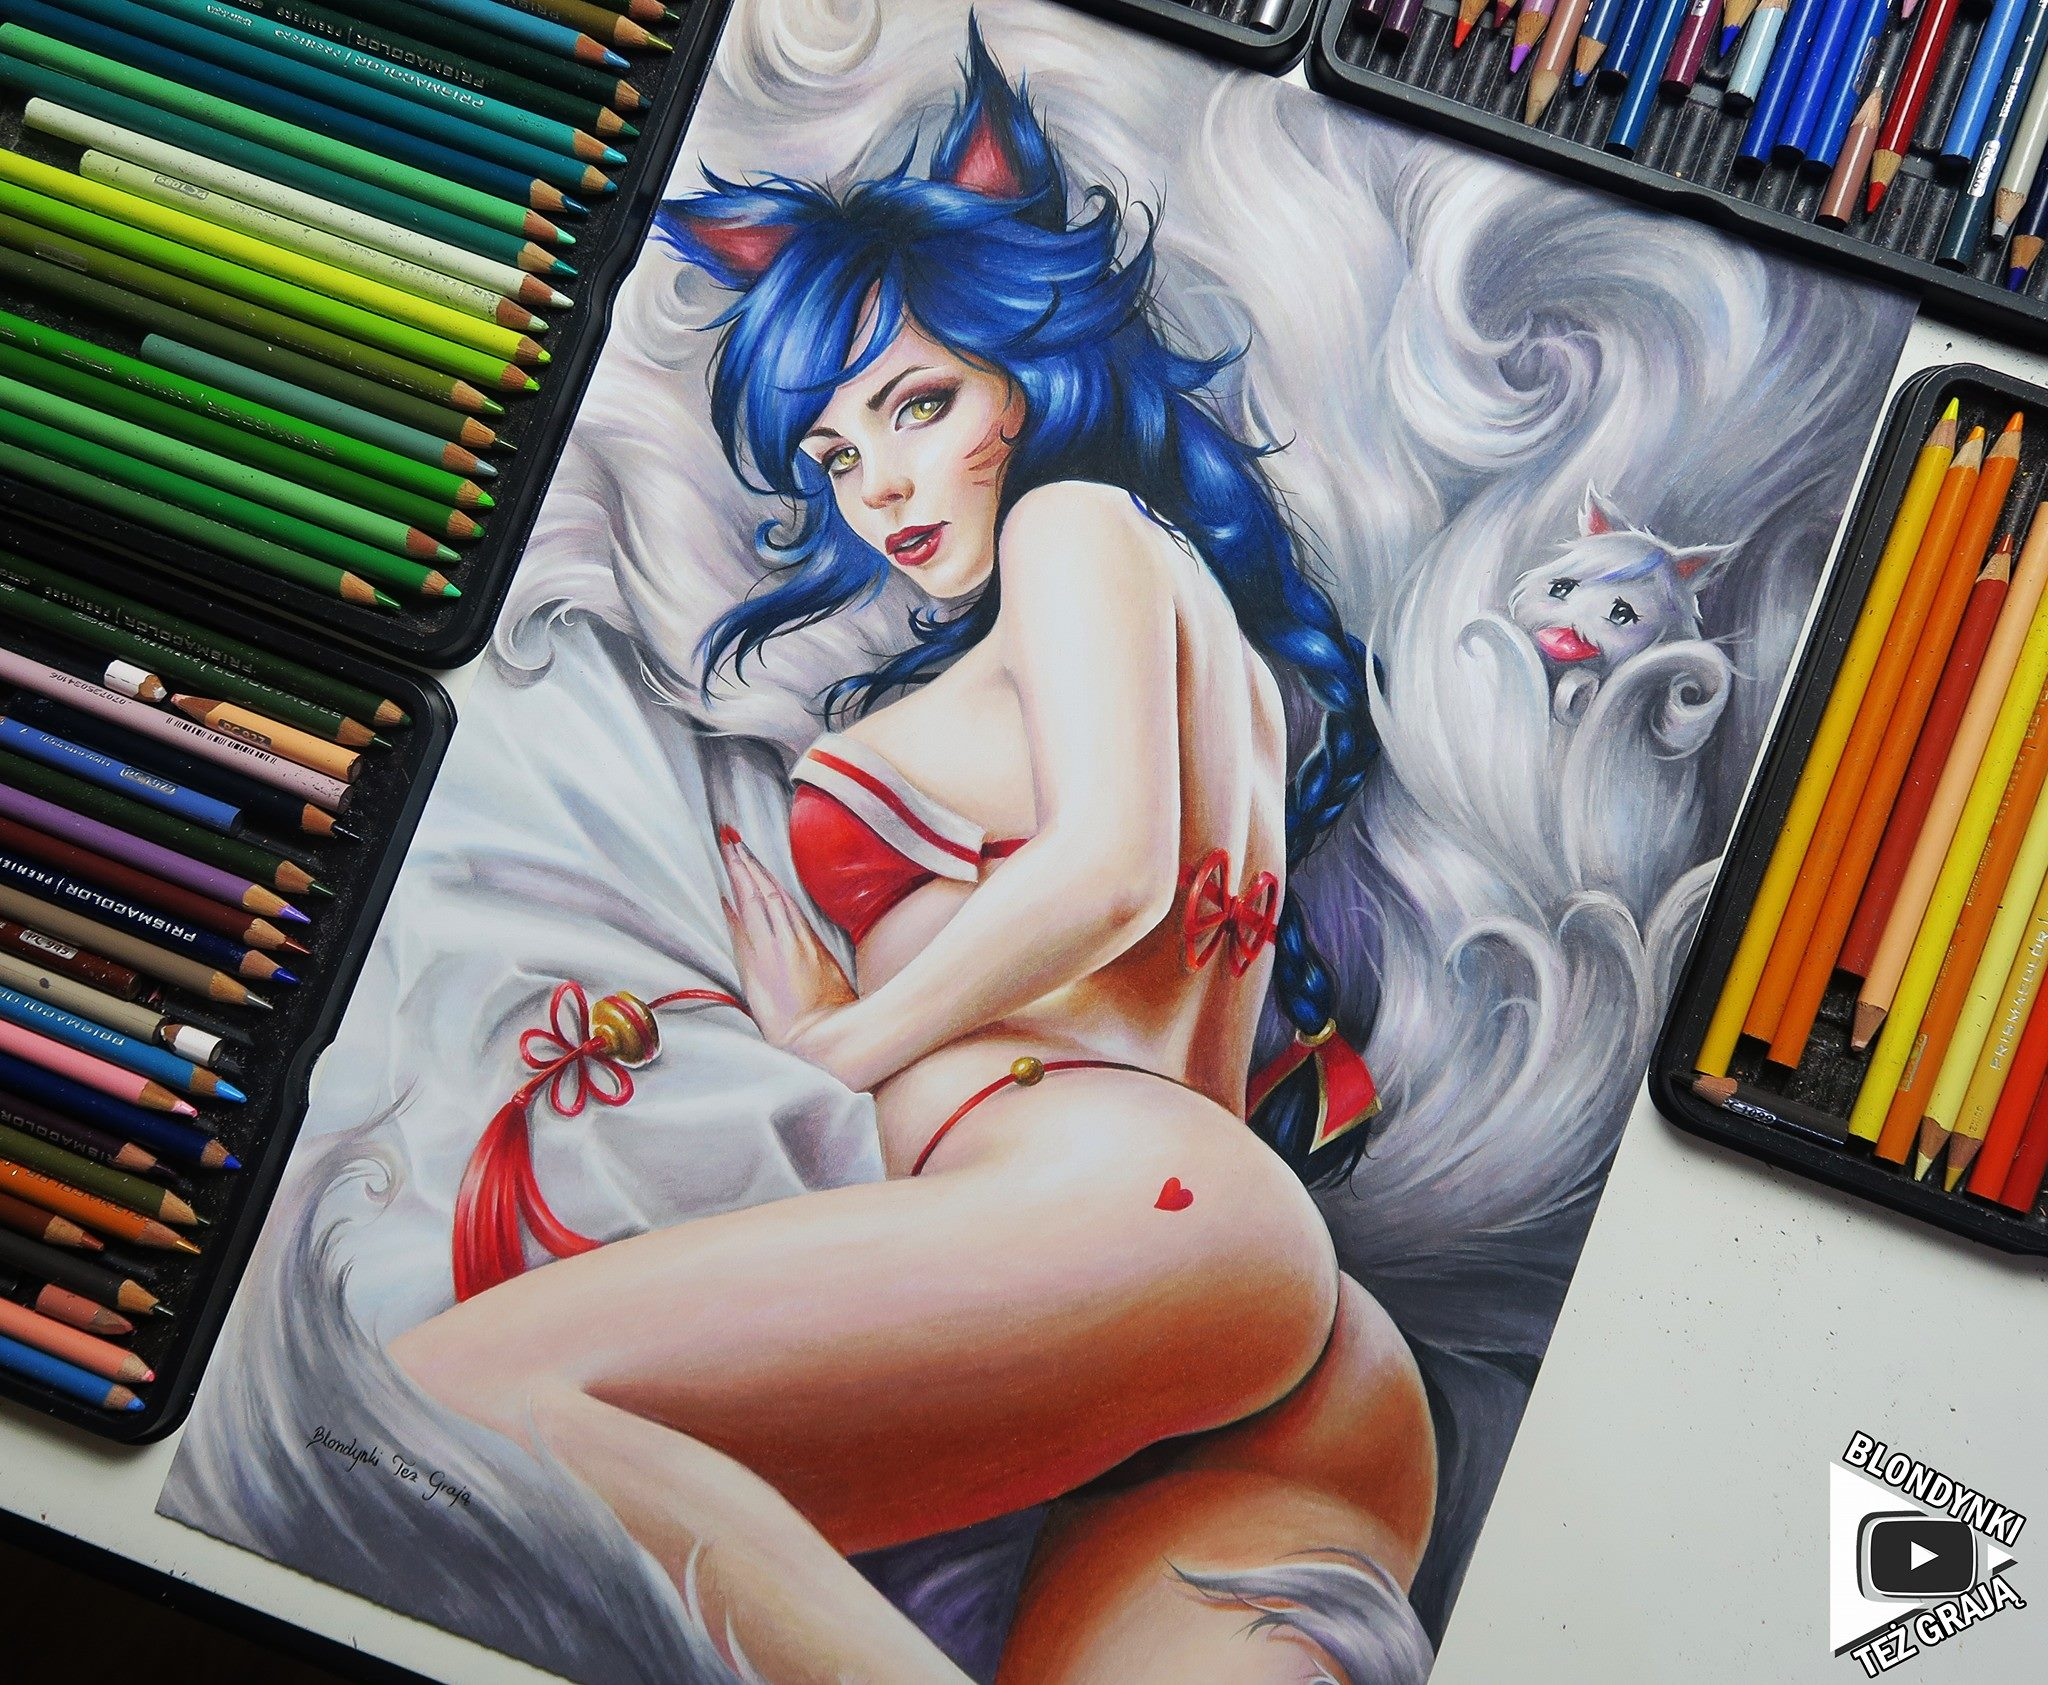 Ahri drawing by Blondynki Też Grają - League of Legends art